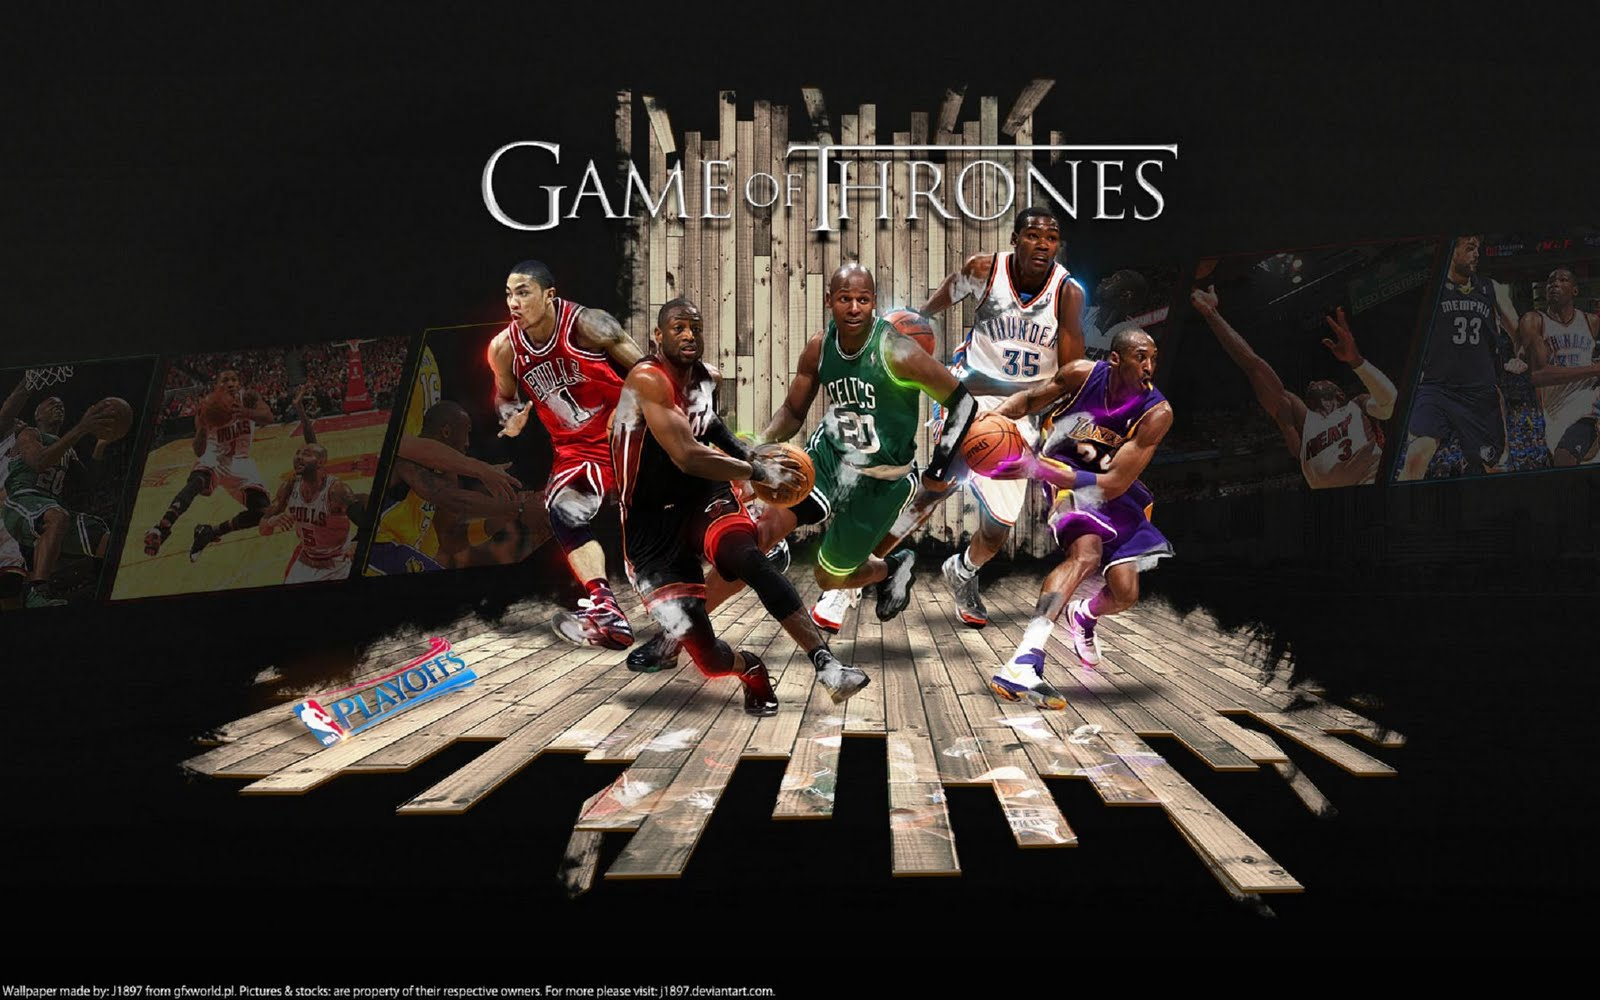 http://2.bp.blogspot.com/-ueRKUUJP8s0/TiWDUpD6XWI/AAAAAAAAA84/CLbAVw8ZROk/s1600/2011-NBA-Playoffs-Game-Of-Thrones-Wallpaper.jpg